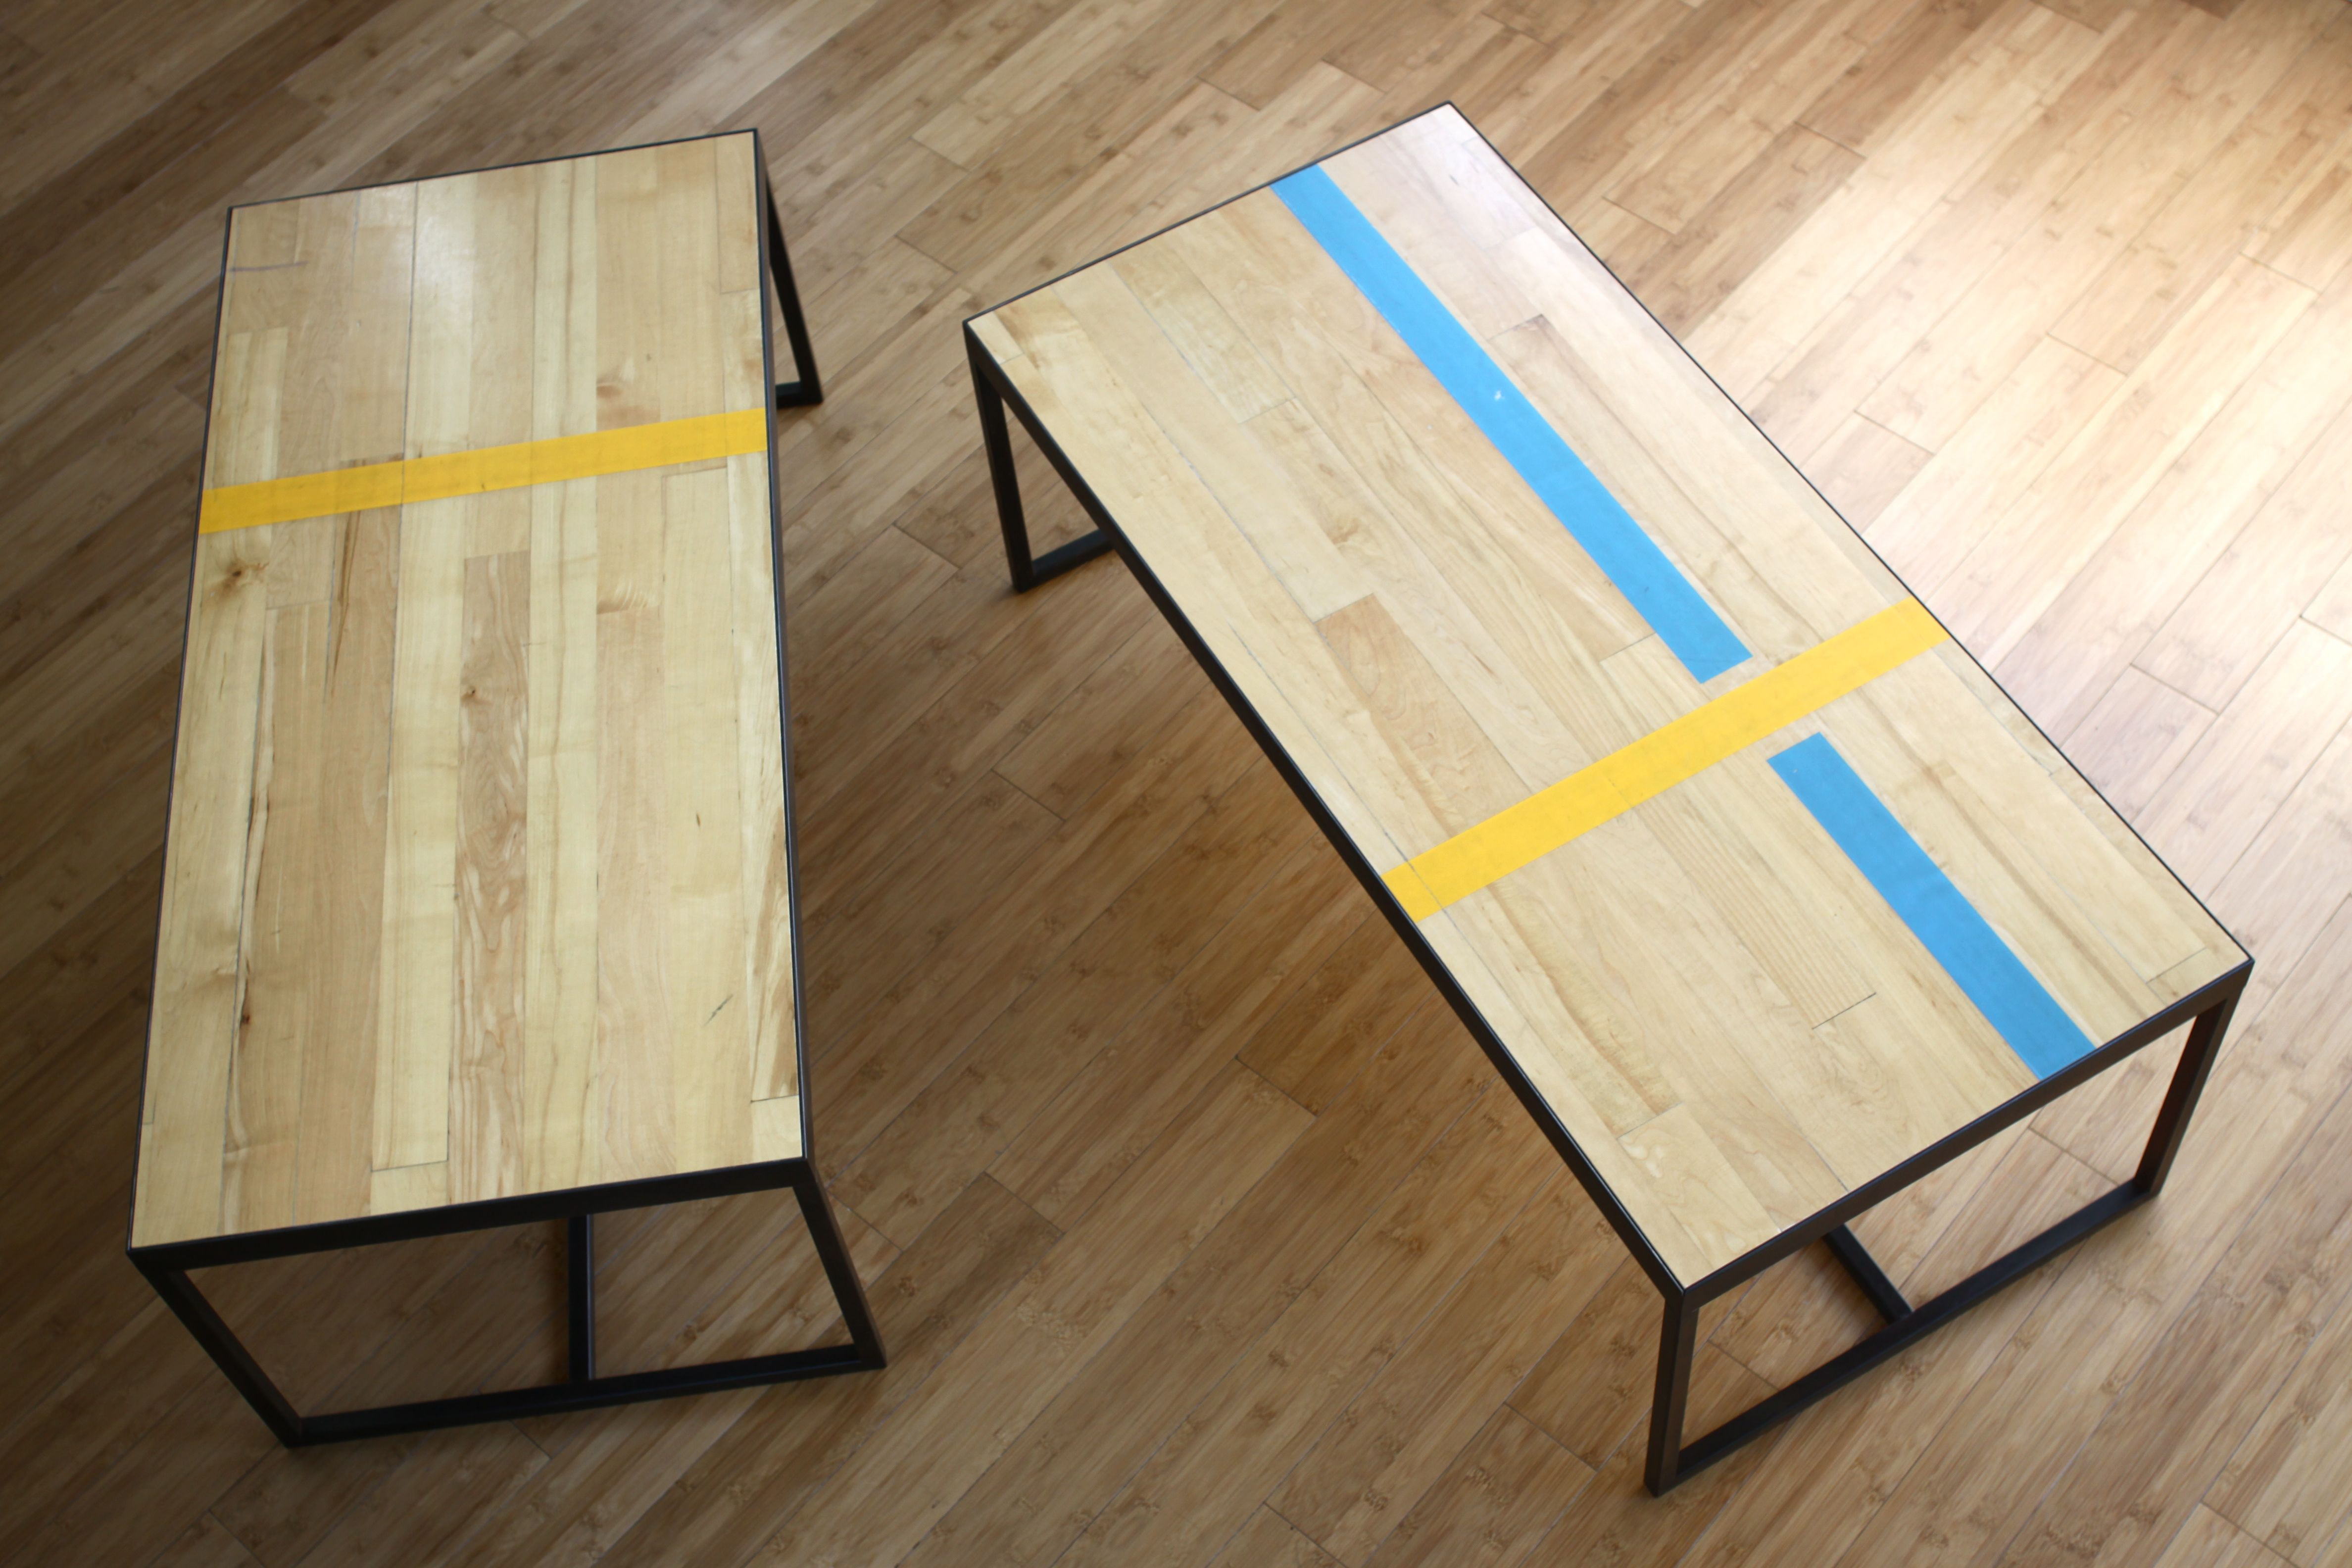 Floor Tables Basketball Court Recycled Table Google Search Paper Fox Office